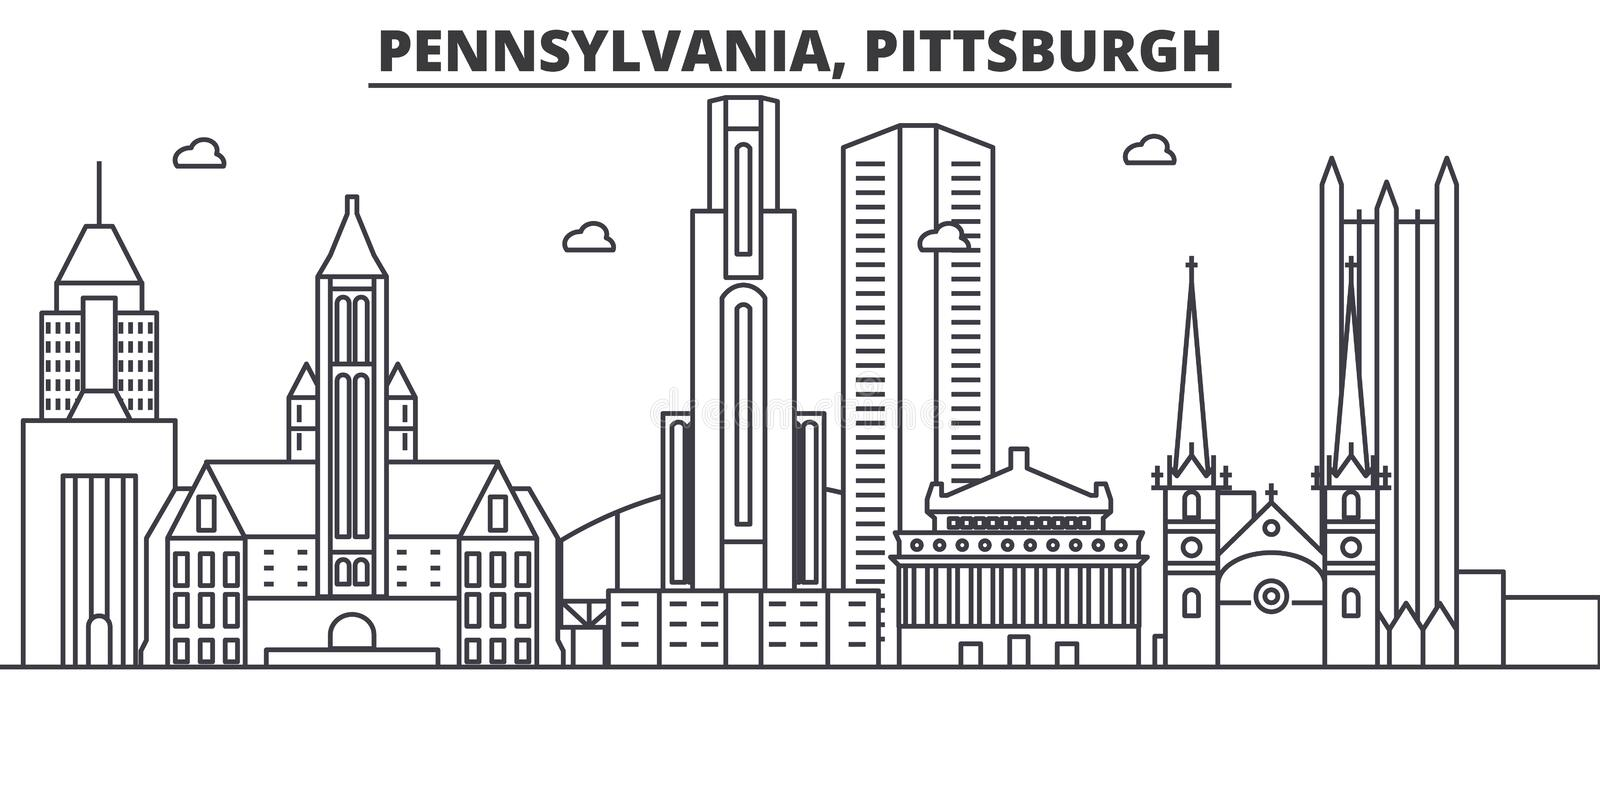 Pennsylvania Pittsburgh architecture line skyline illustration. Linear vector cityscape with famous landmarks, cit stock illustration